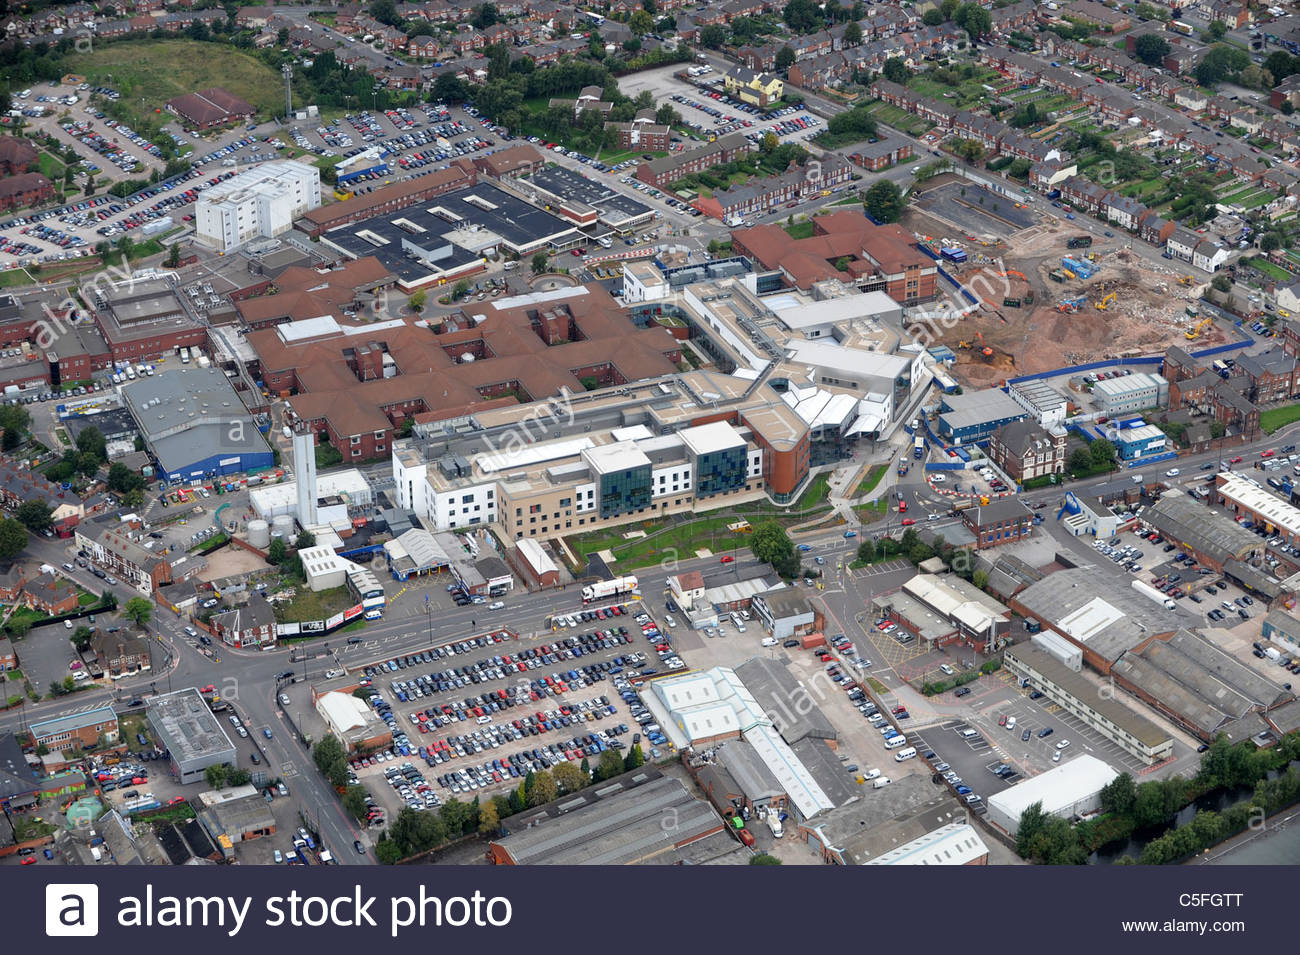 Aerial view of Sandwell General Hospital West Bromwich Sandwell Uk - Stock Image